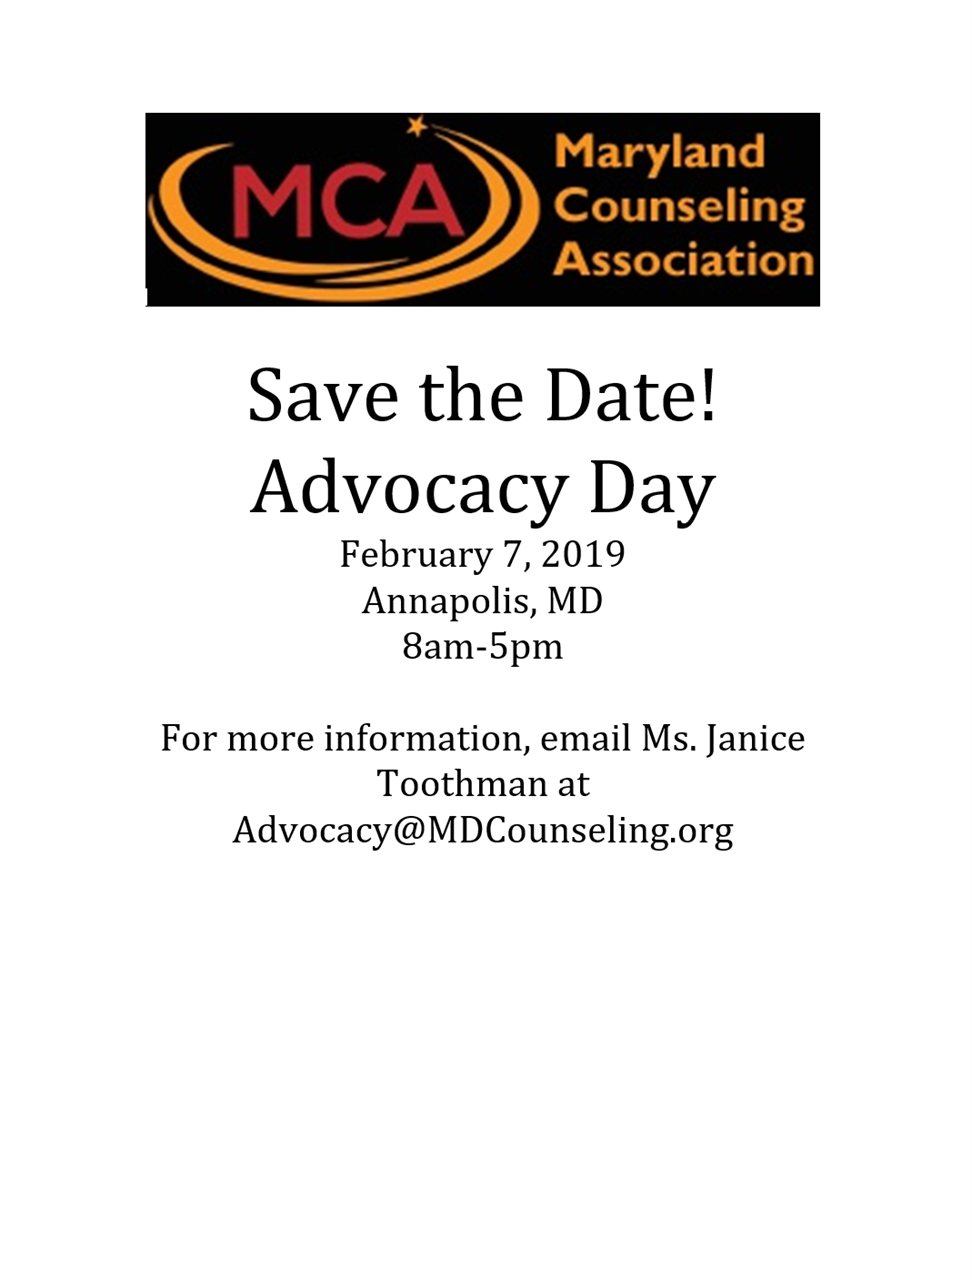 Maryland Counseling Association Home